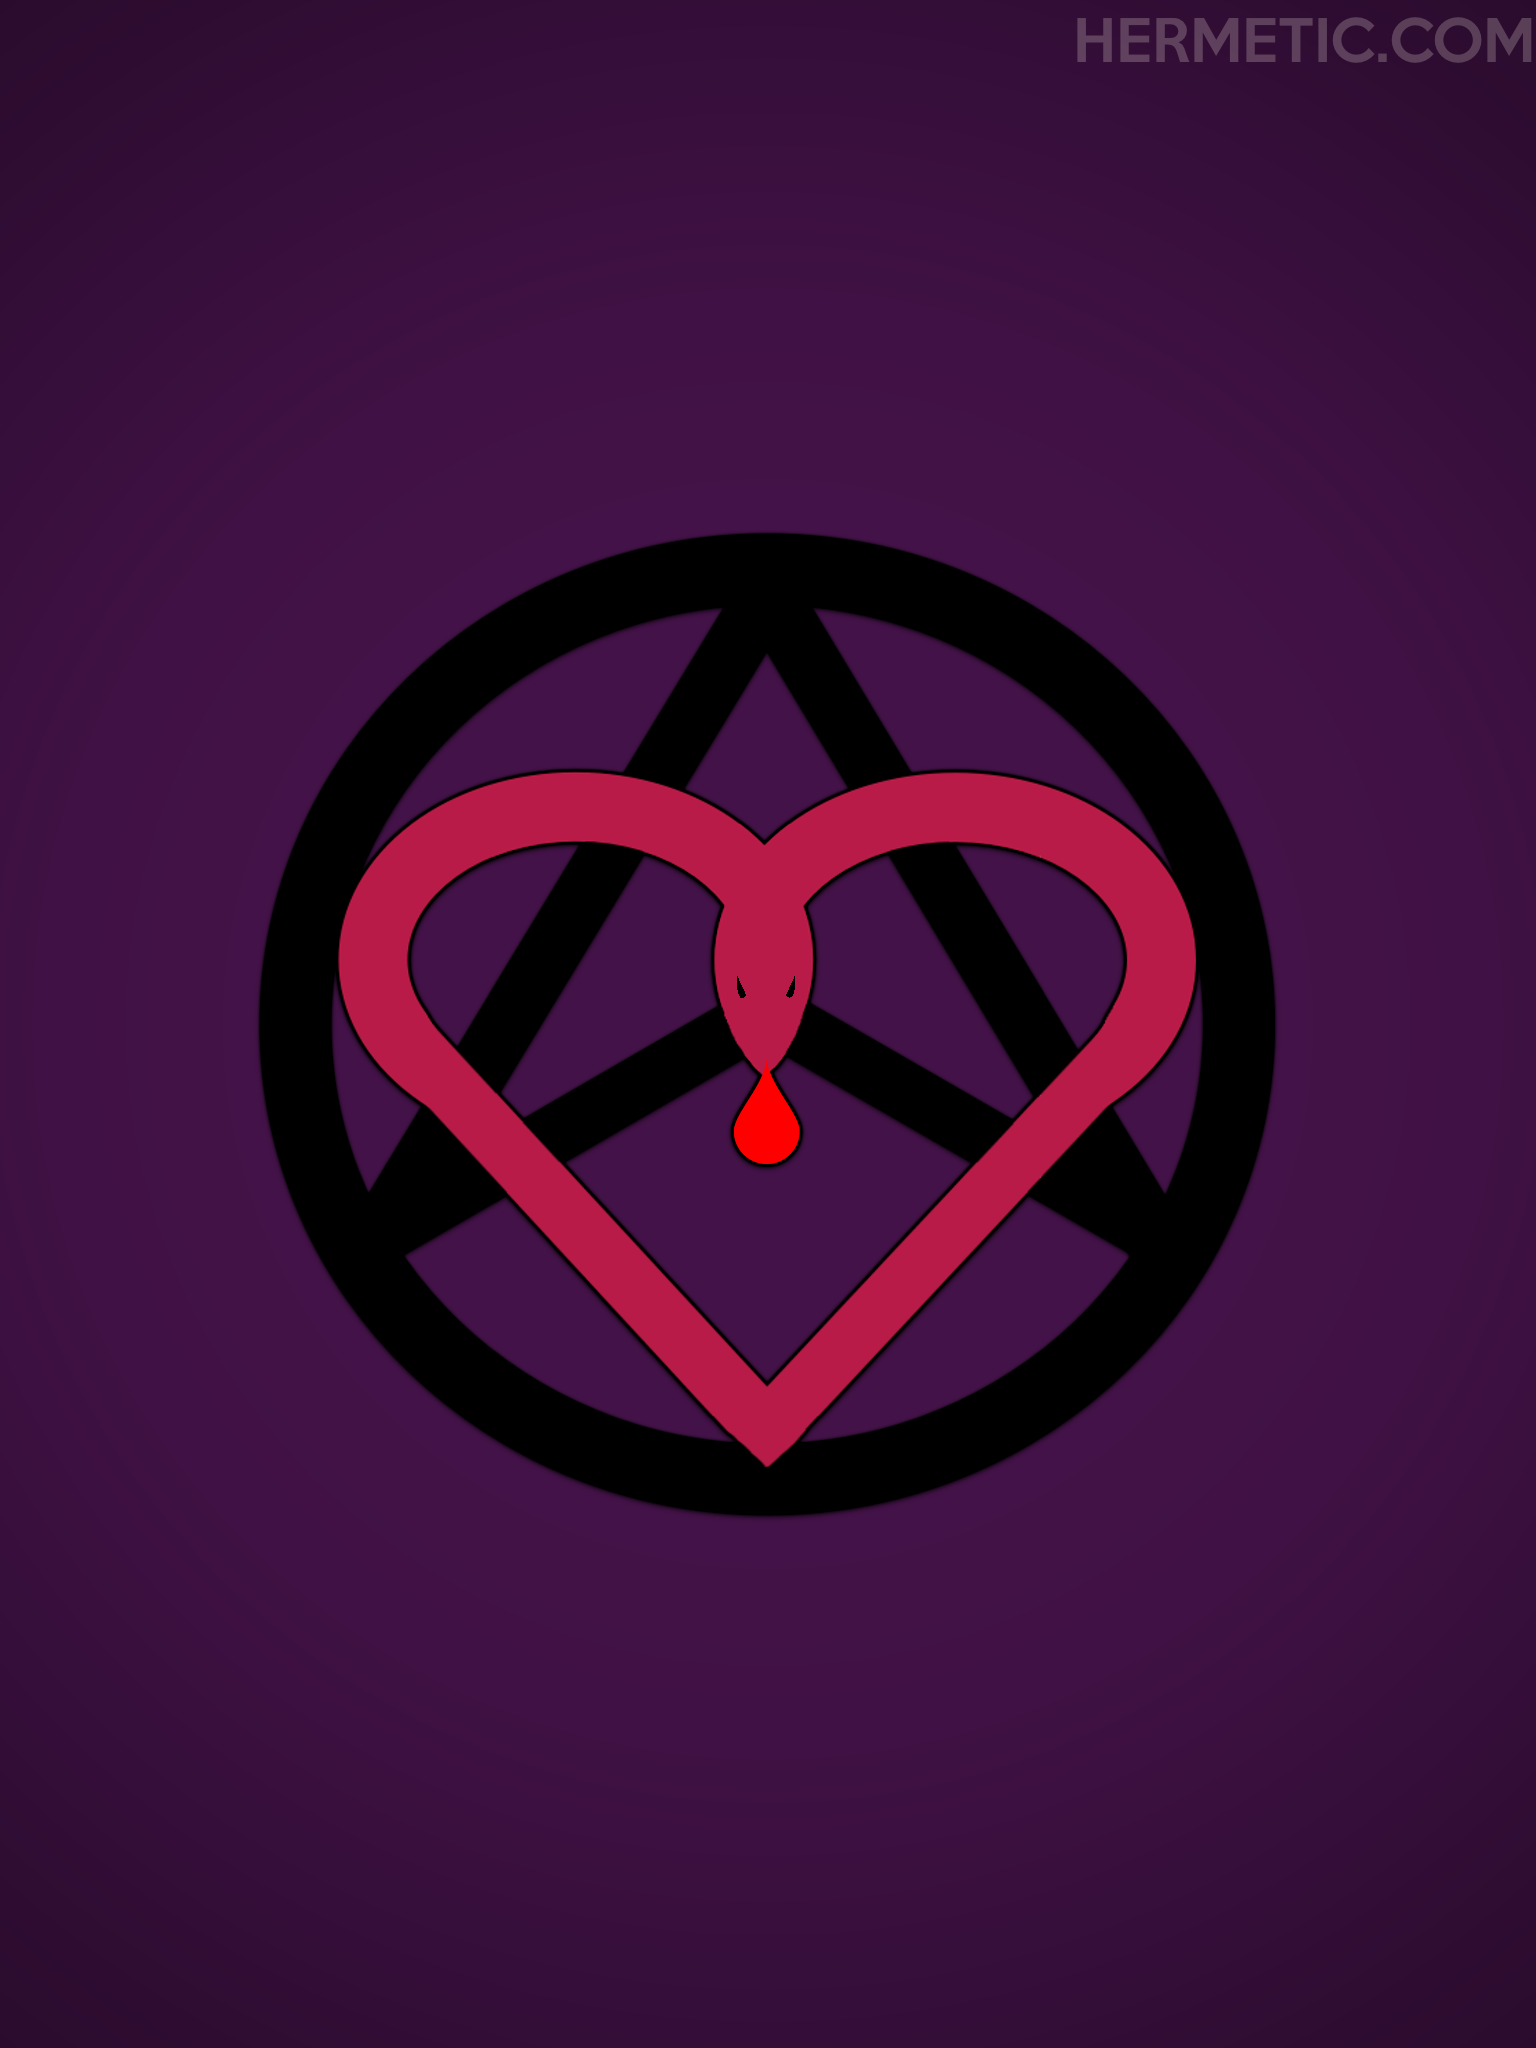 Unicursal Heart Serpent Blood Love Law Hexagram Propaganda Poster from Hermetic Library Office of the Ministry of Information